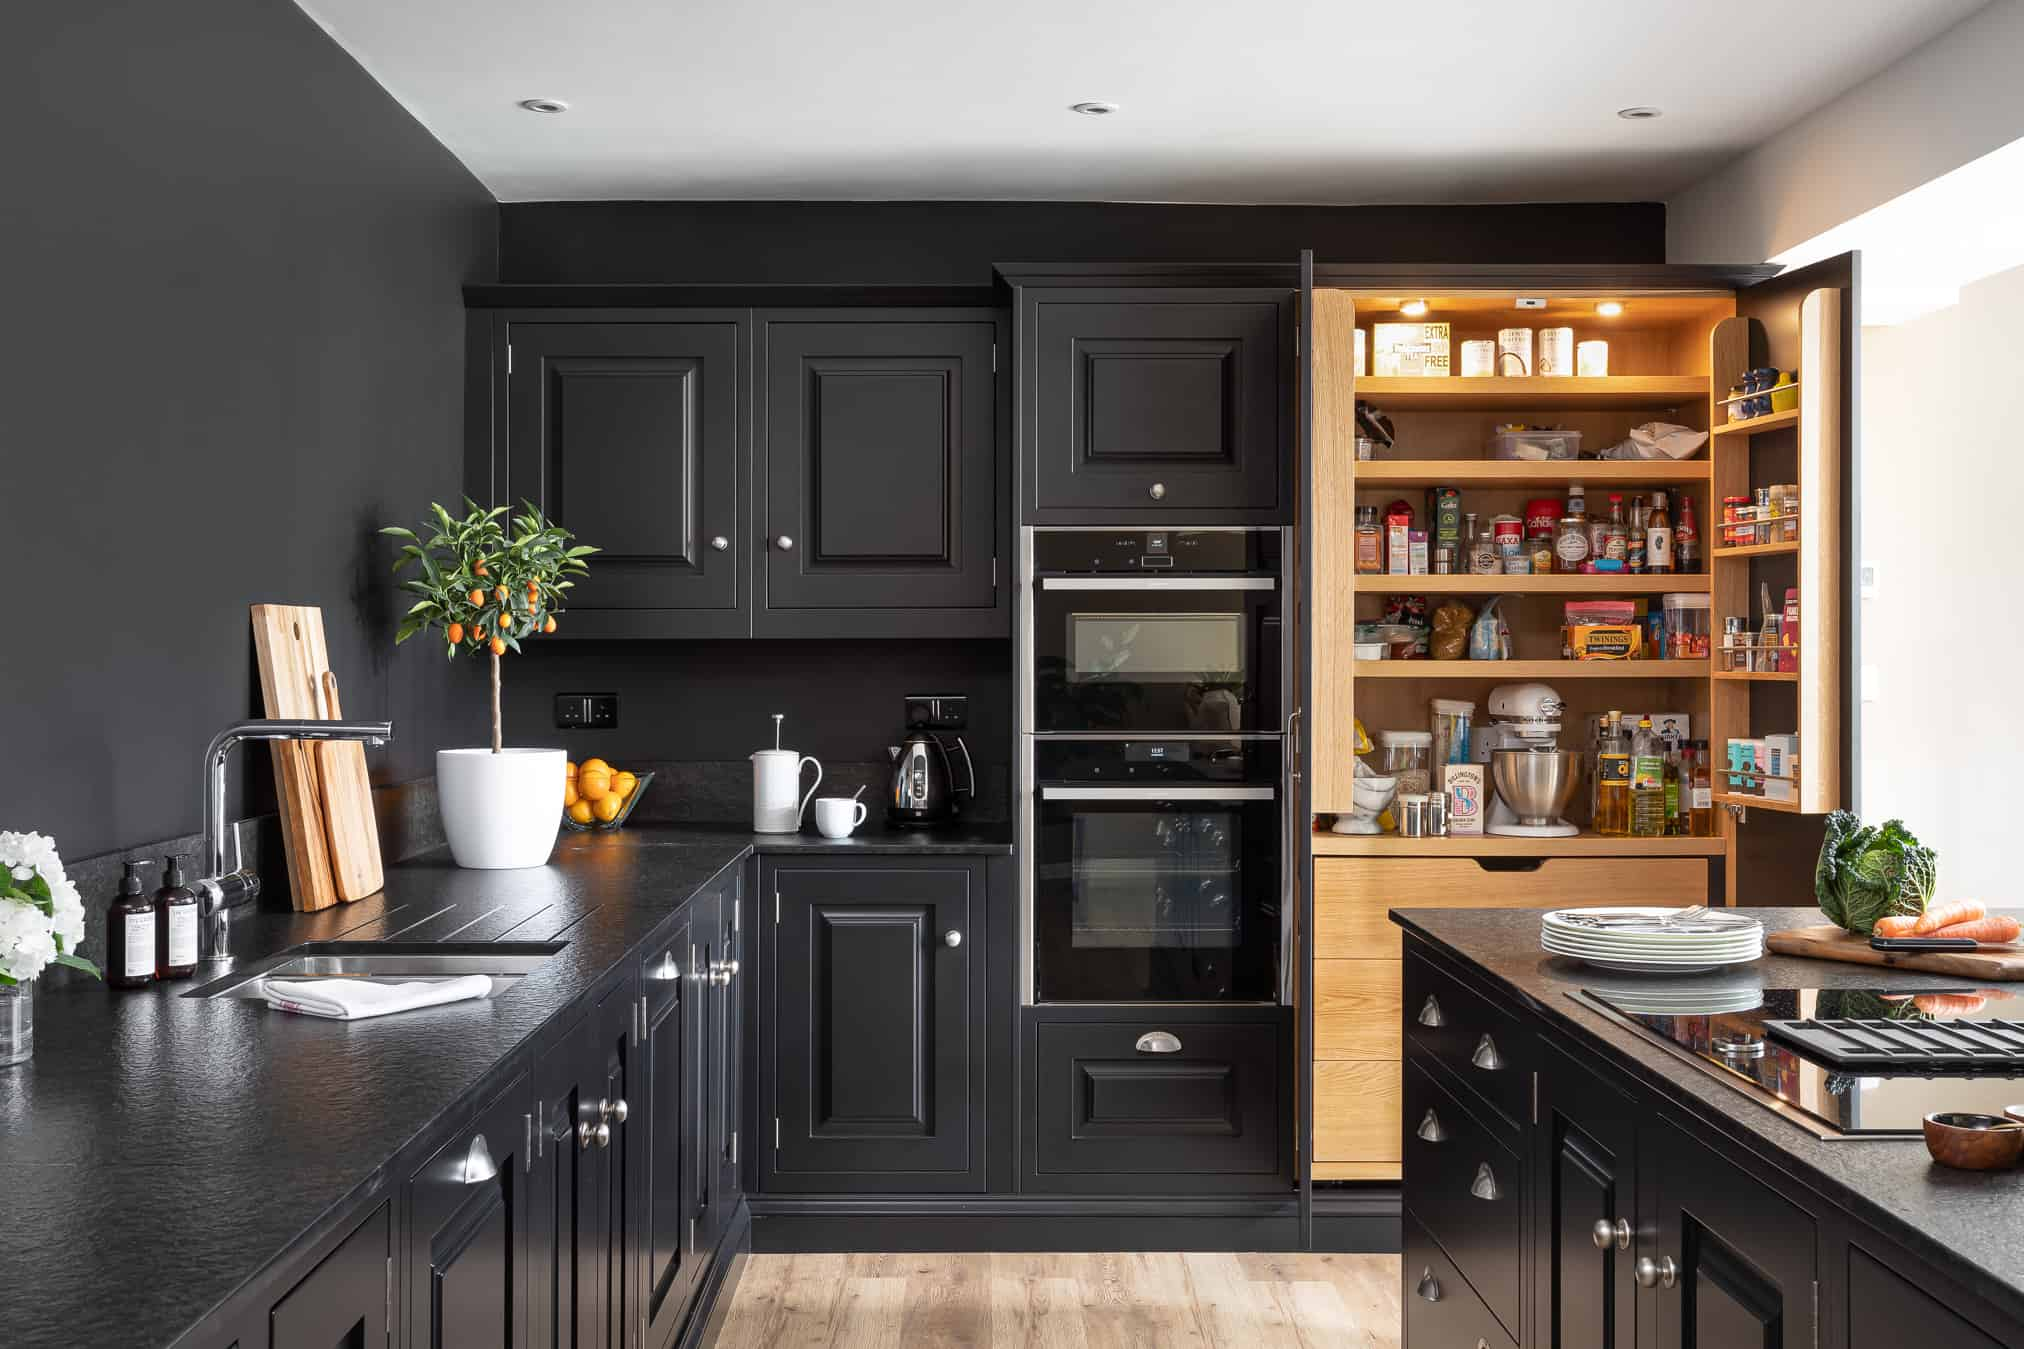 Black artisan kitchen with larder John Lewis of Hungerford